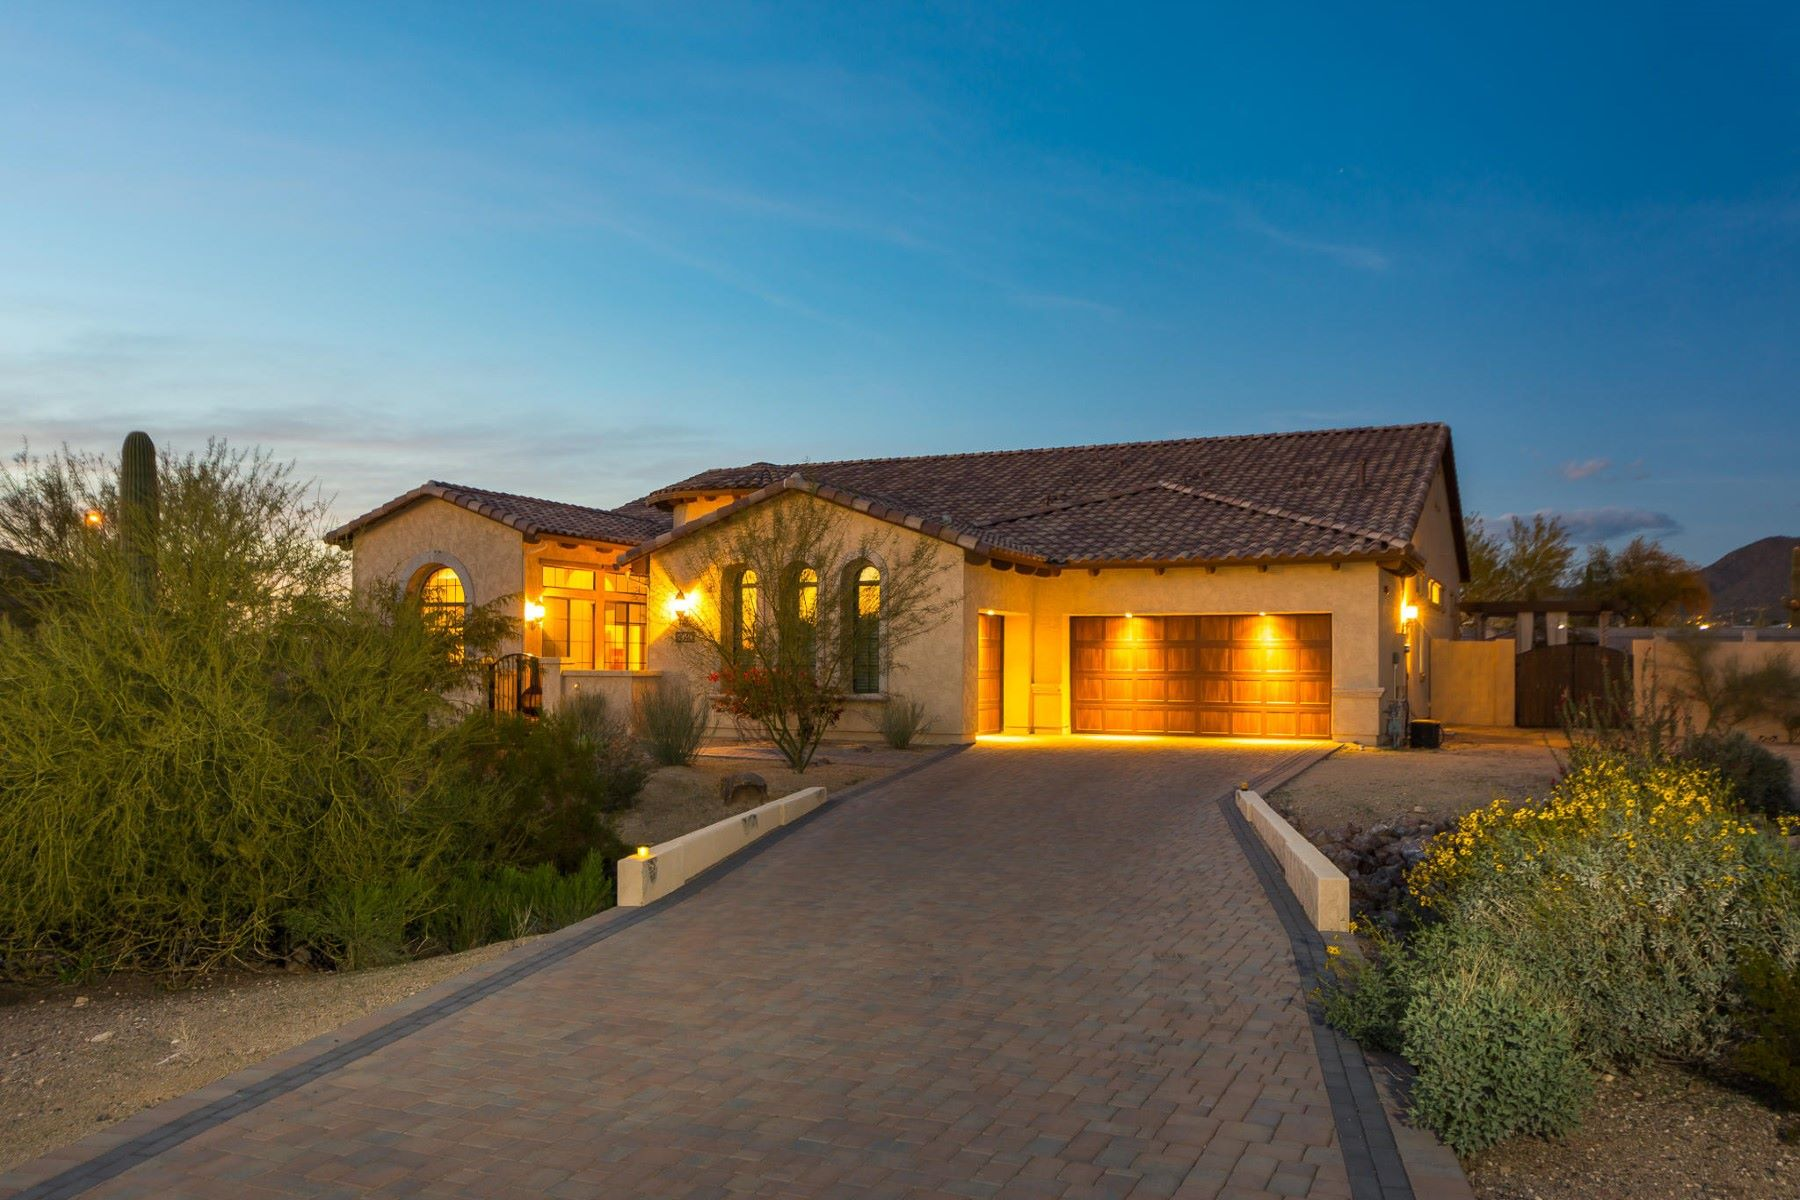 Single Family Home for Sale at Resort-style living in Mountain Bridge gated community 8040 E Laurel St Mesa, Arizona, 85207 United States